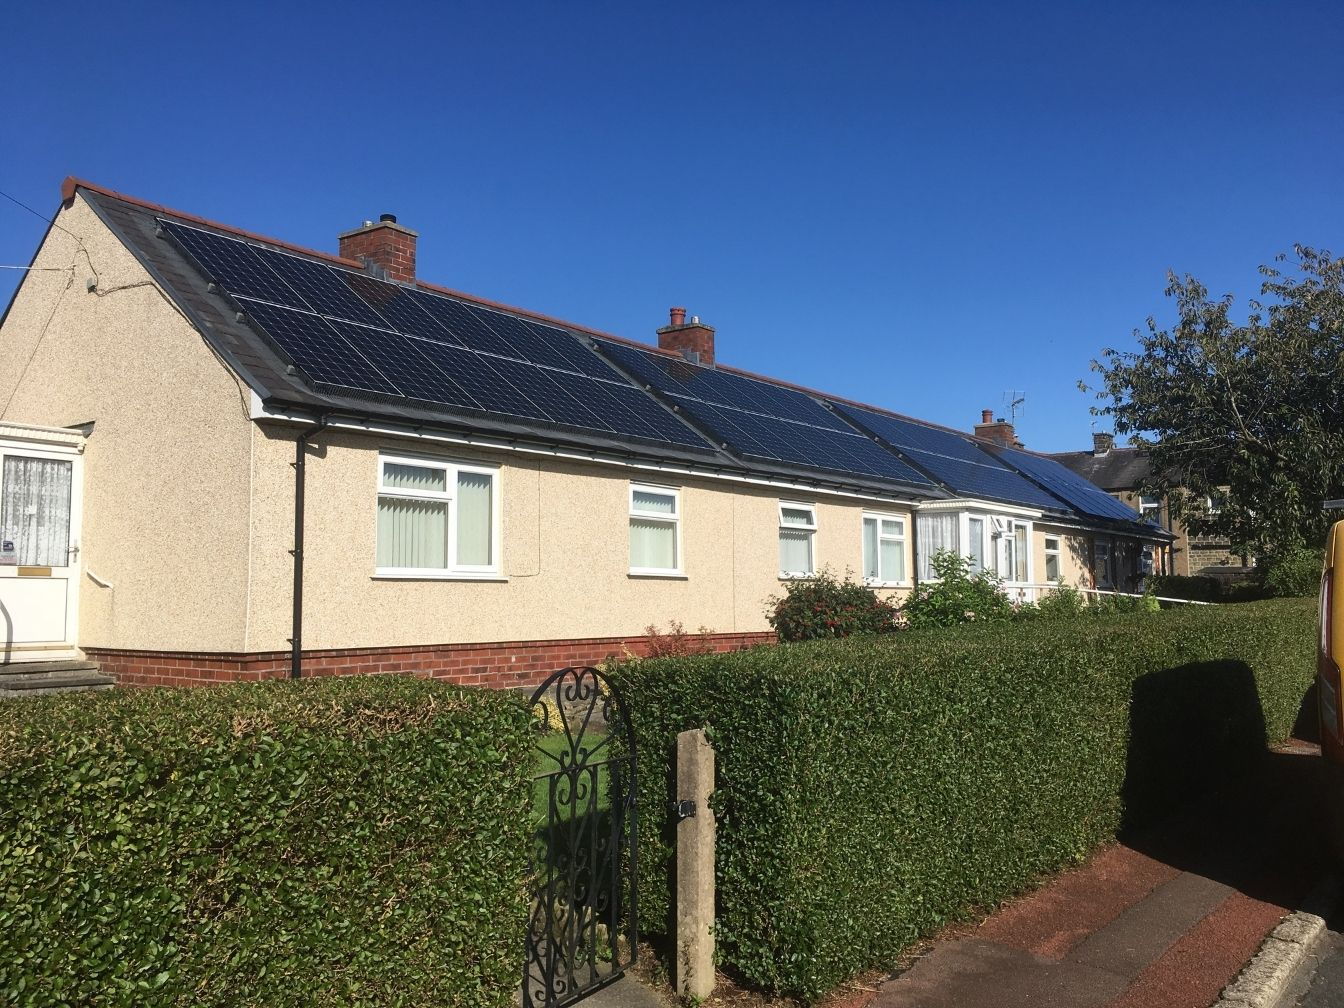 Avonside Renewables and Together Housing's Solar PV & Storage Pilot Project